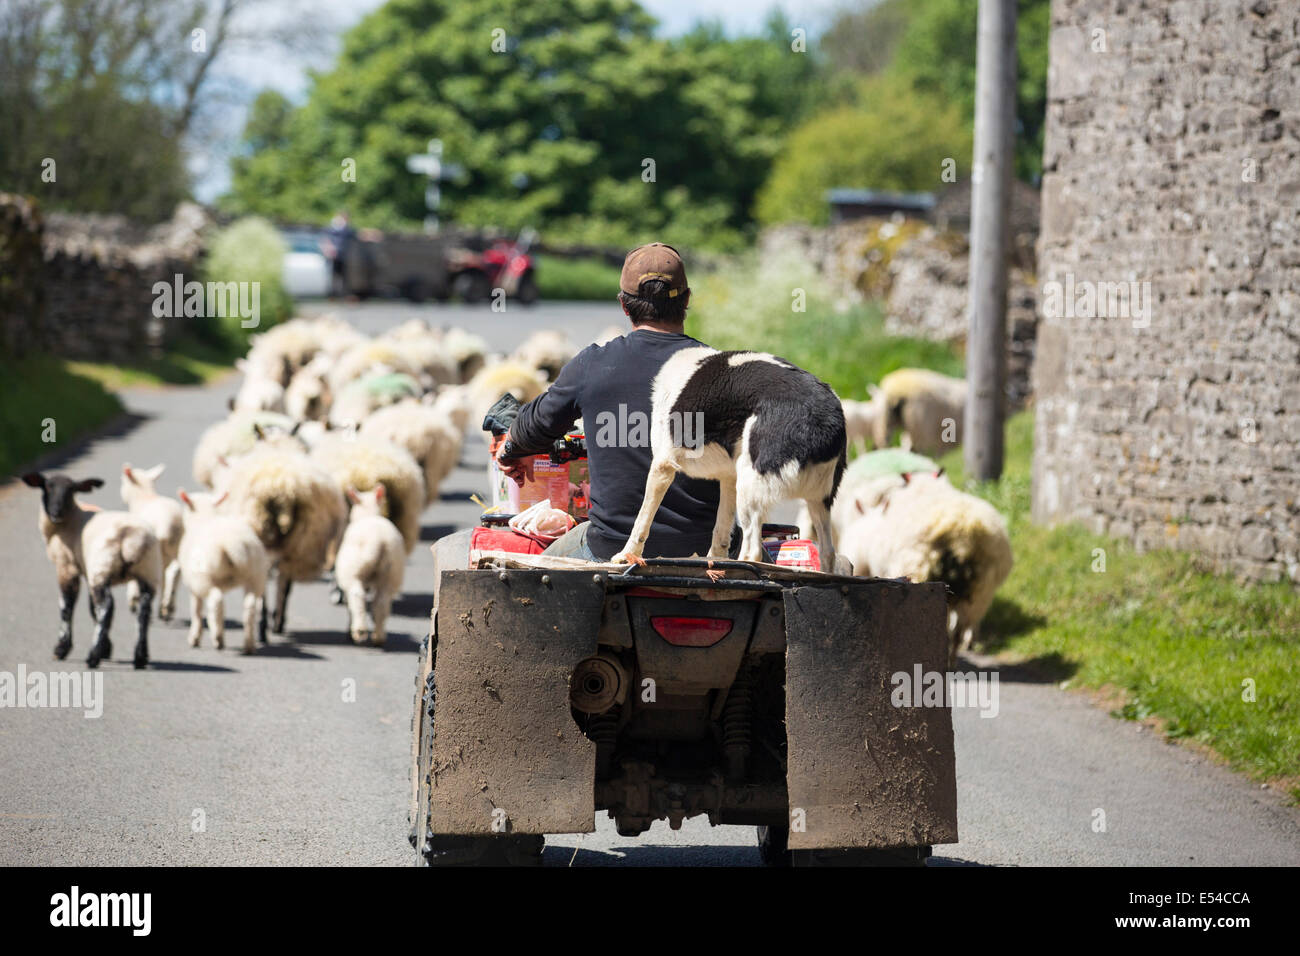 A farmer droving sheep from a quad bike near Haweswater, Lake District, UK. - Stock Image